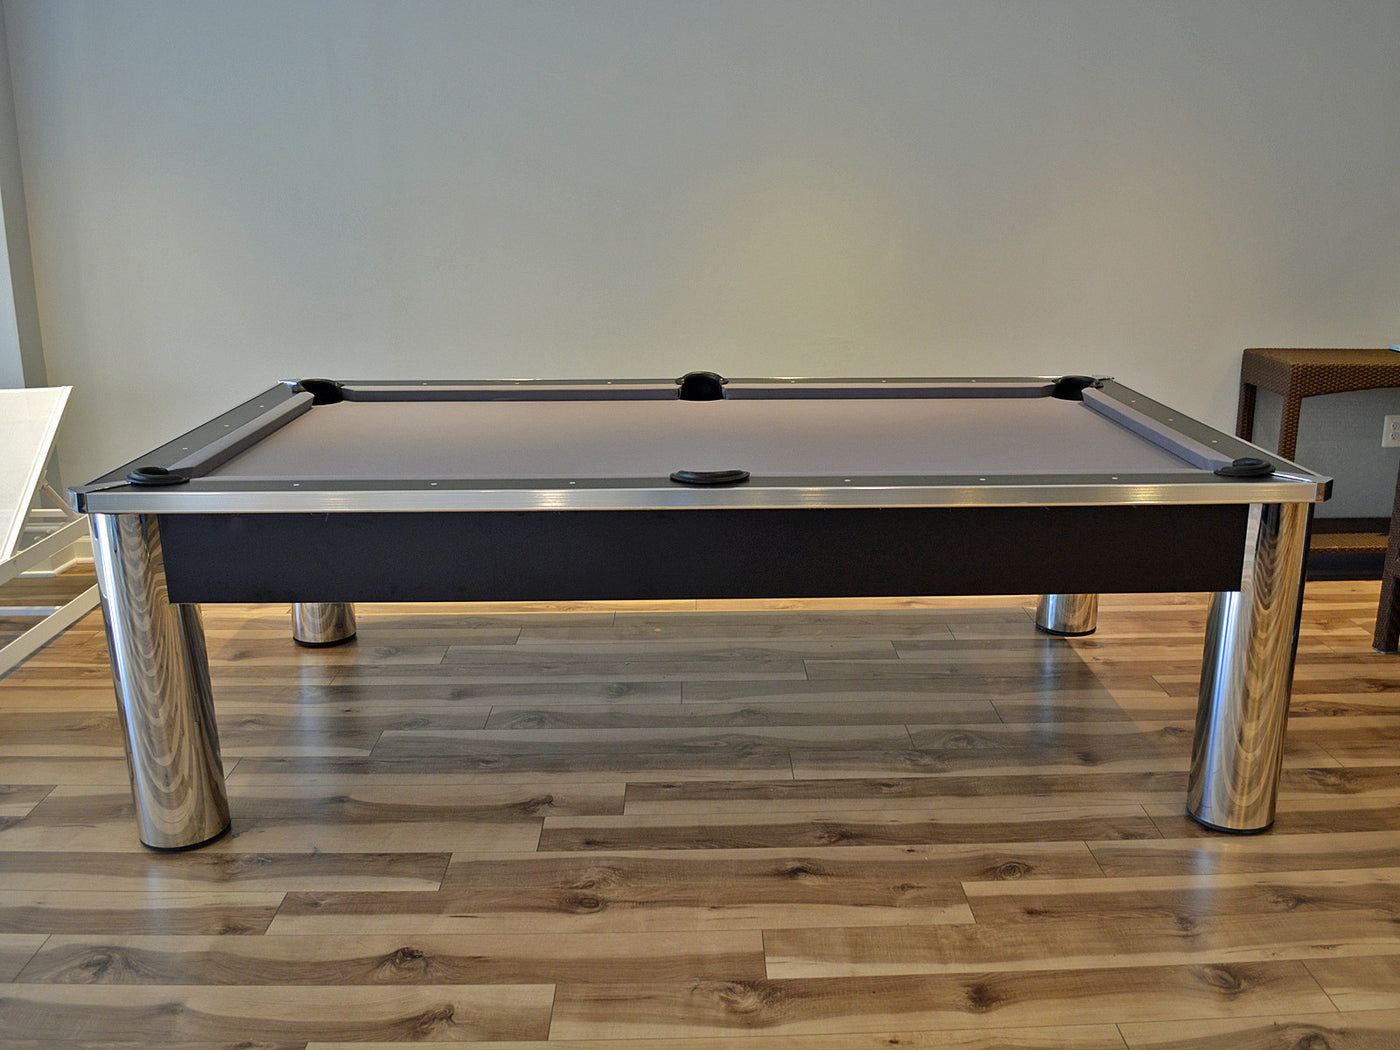 Robbies Billiards Palladium Pool Table - Pool table repair maryland